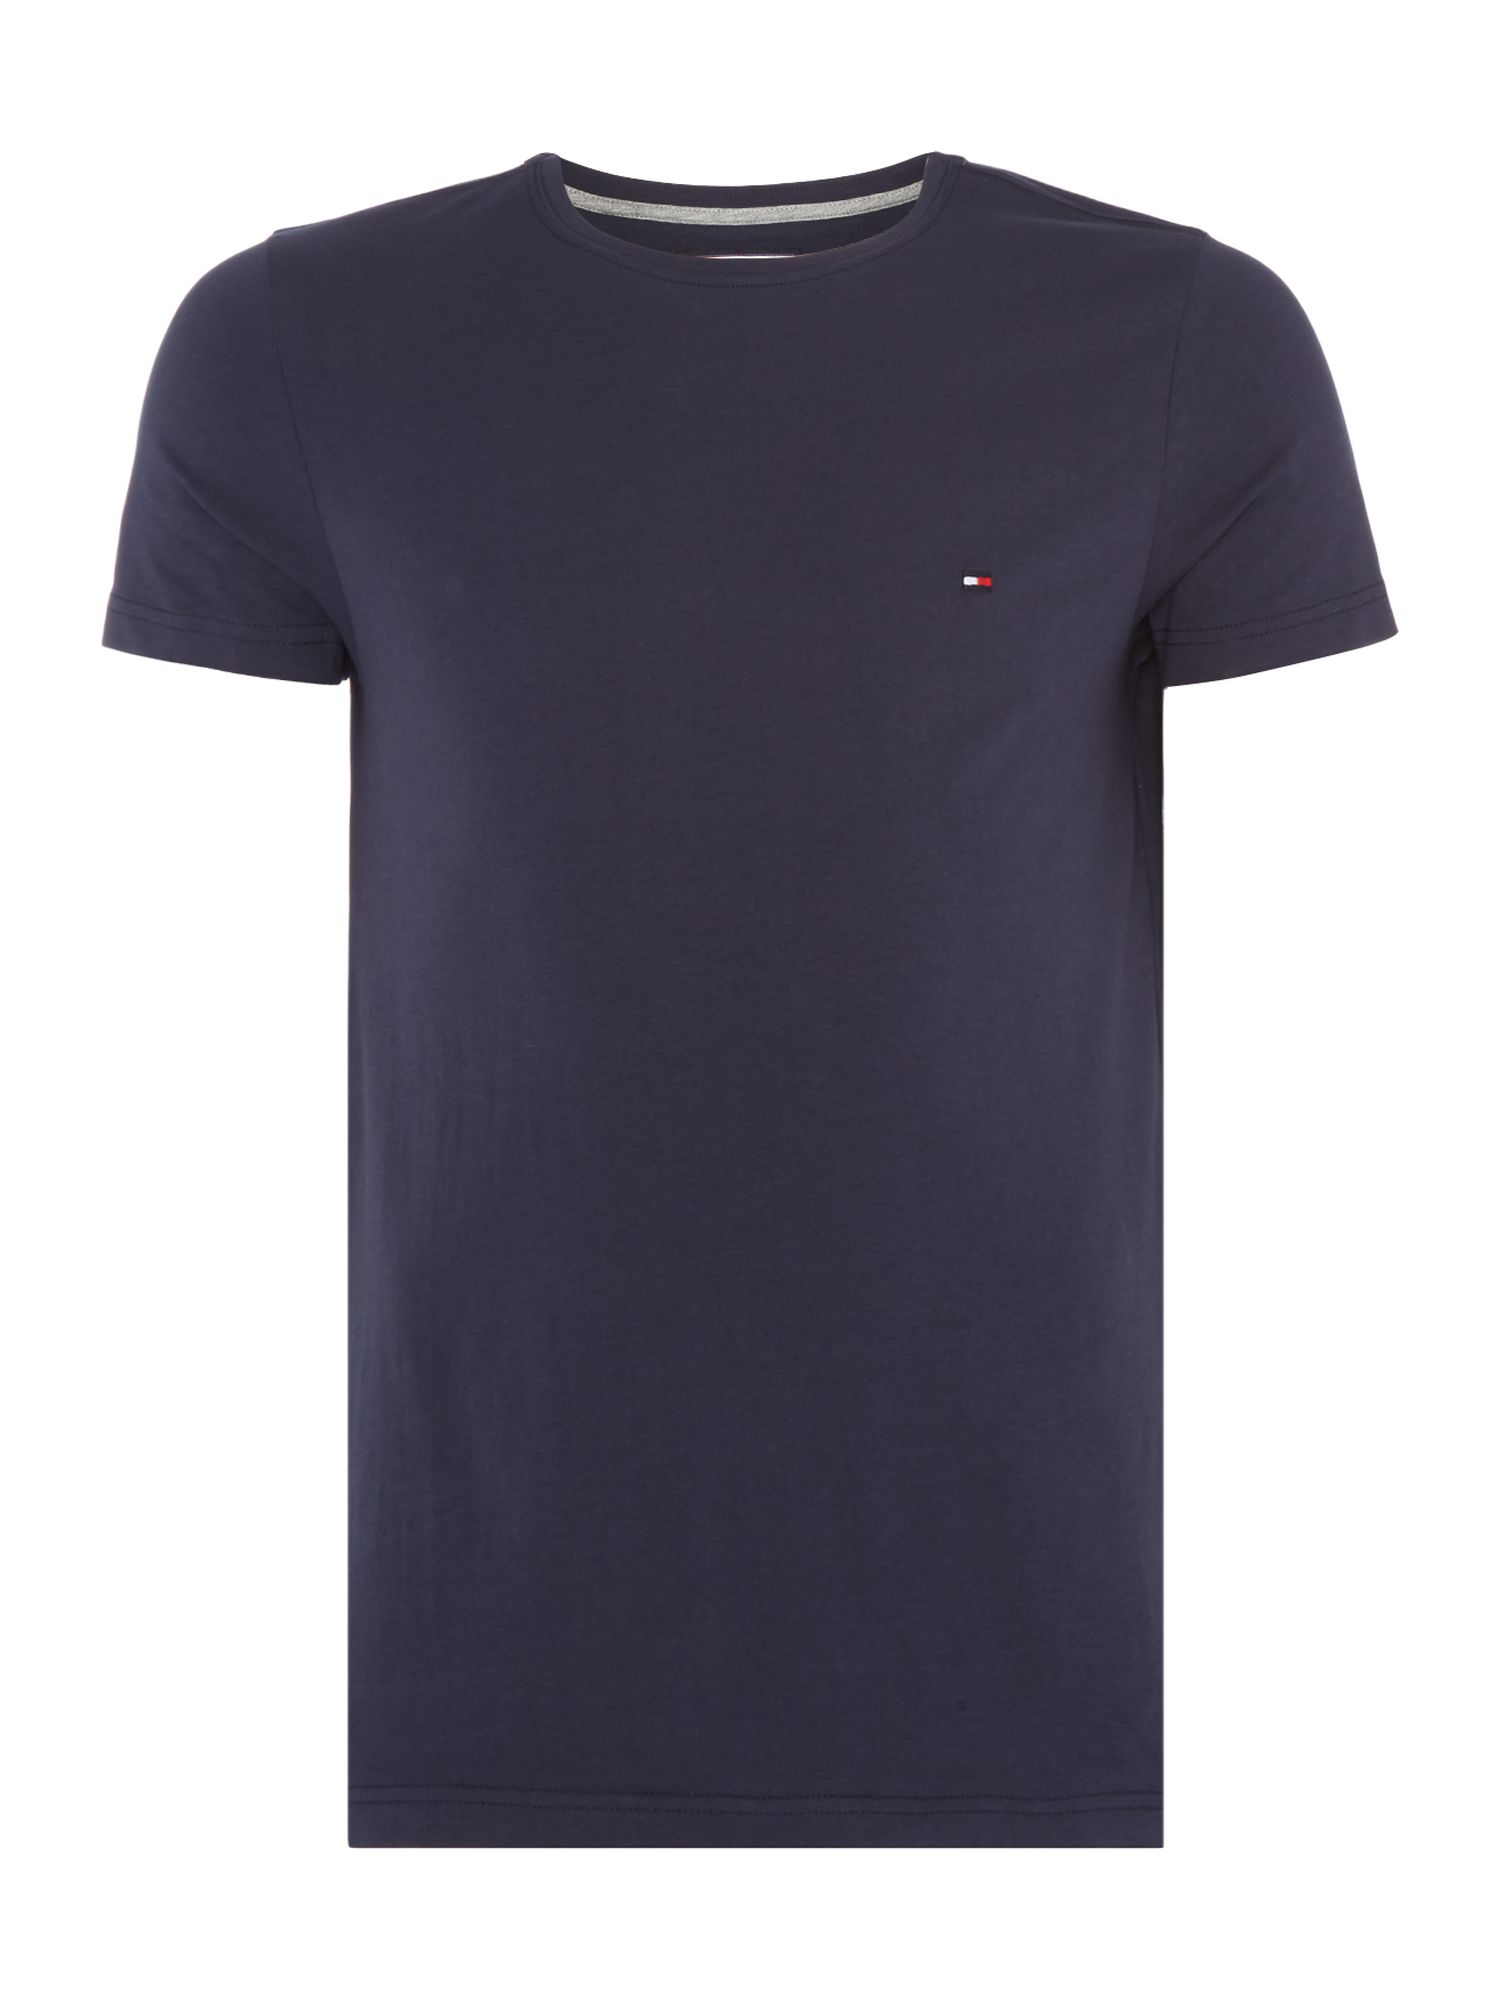 Men's Tommy Hilfiger New Stretch Top, Blue